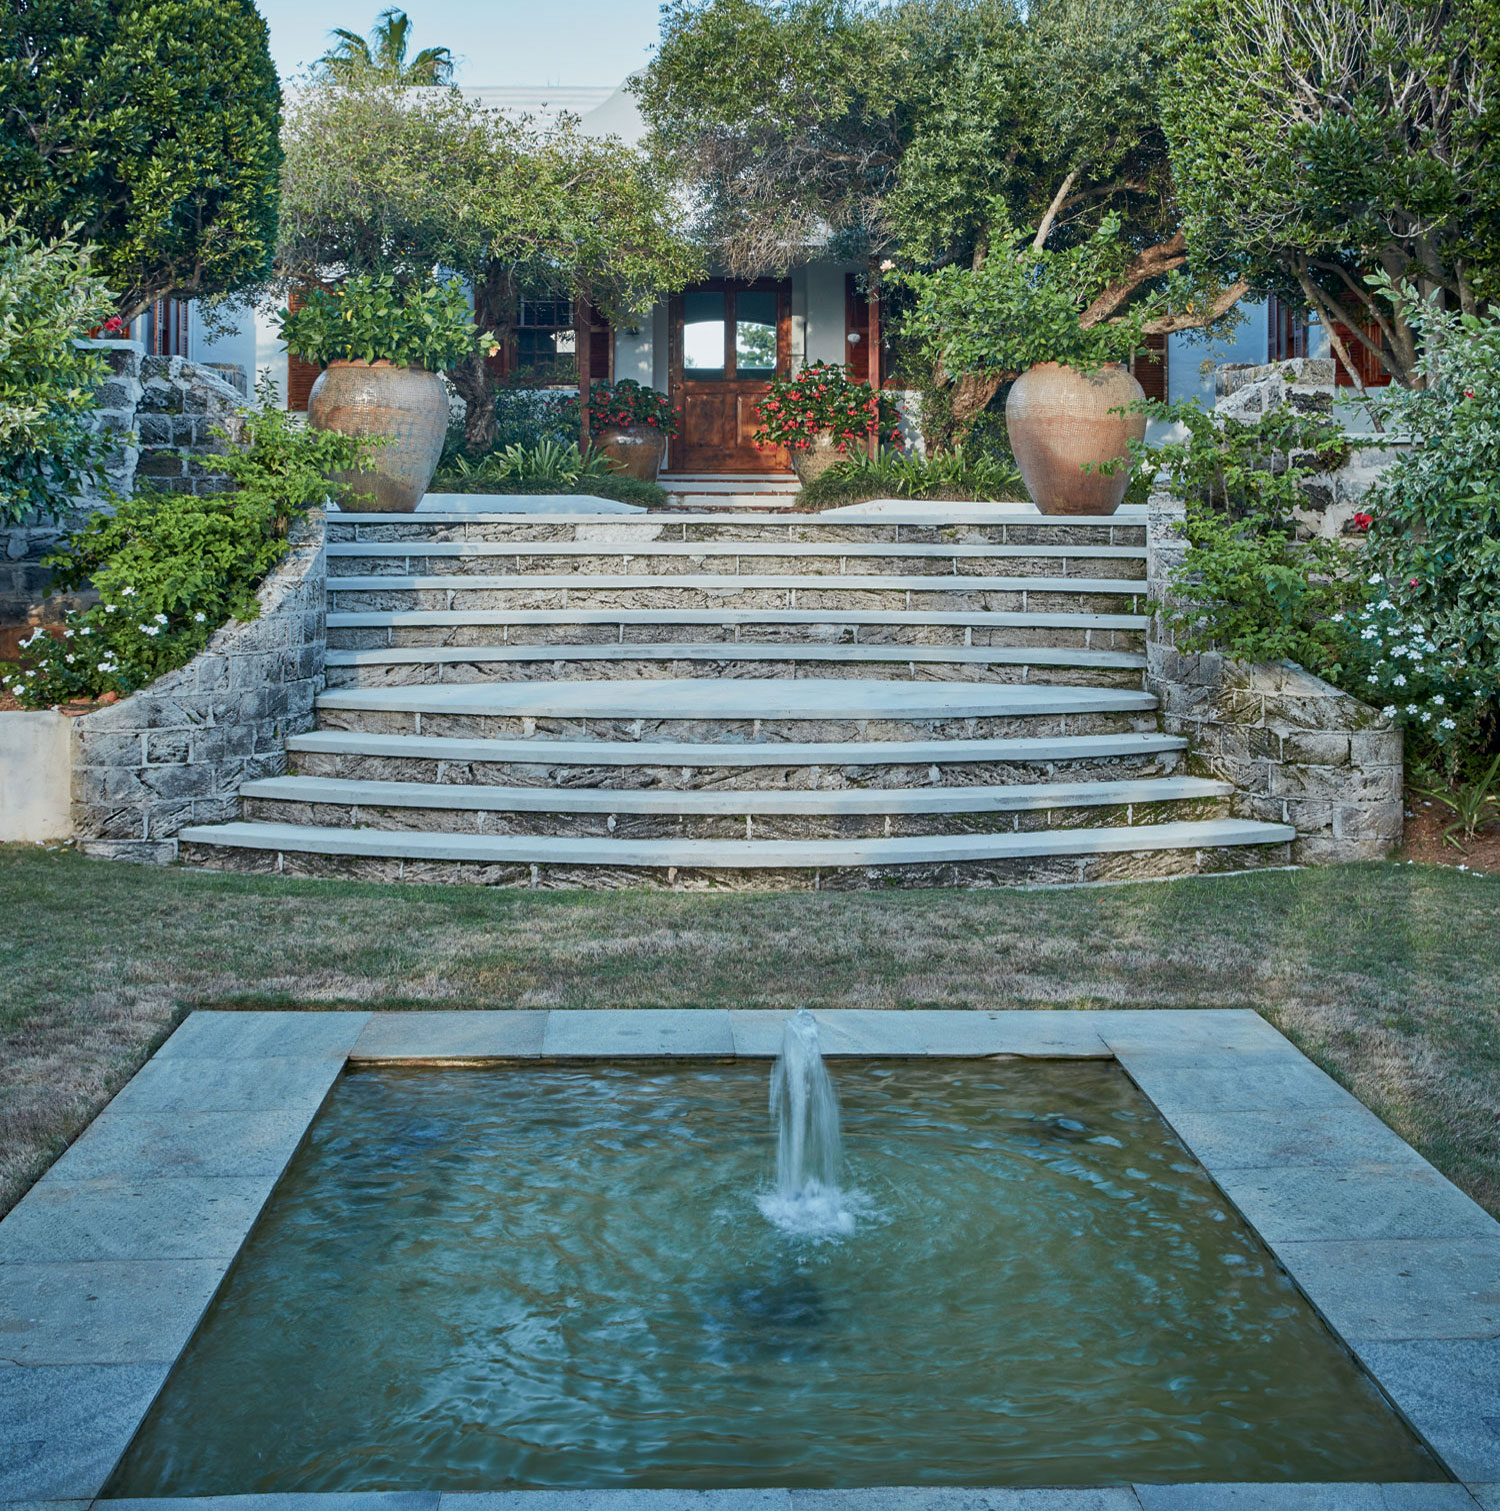 A reflecting pool is among the delights found within Shell Point's paradisiacal grounds.